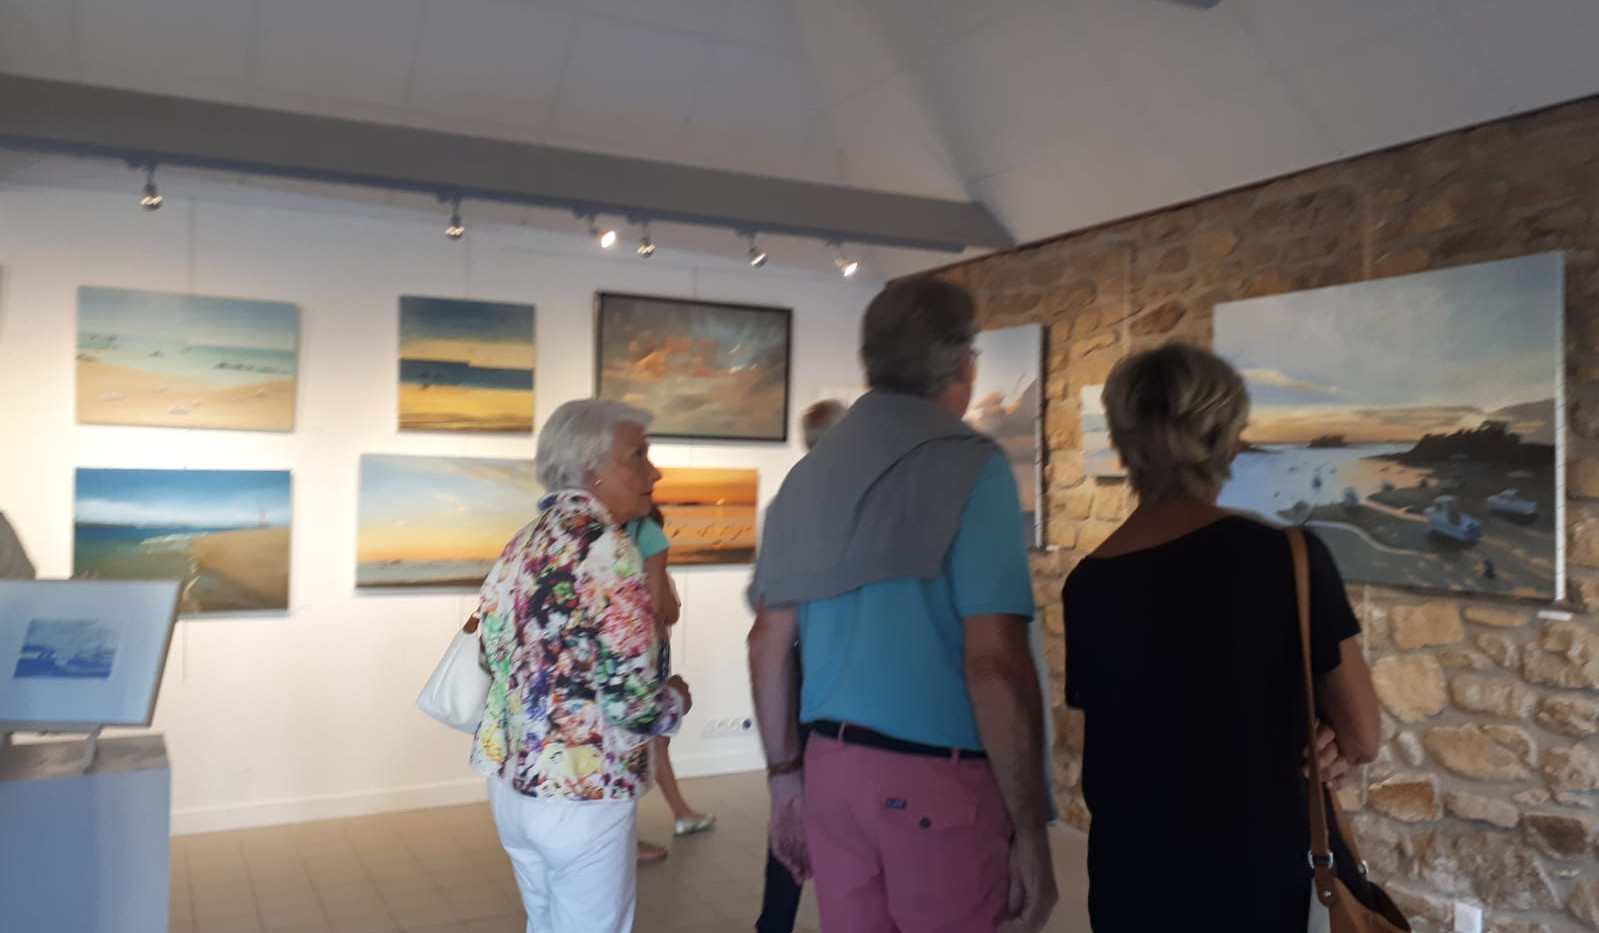 painting exhibition in Saint Briac